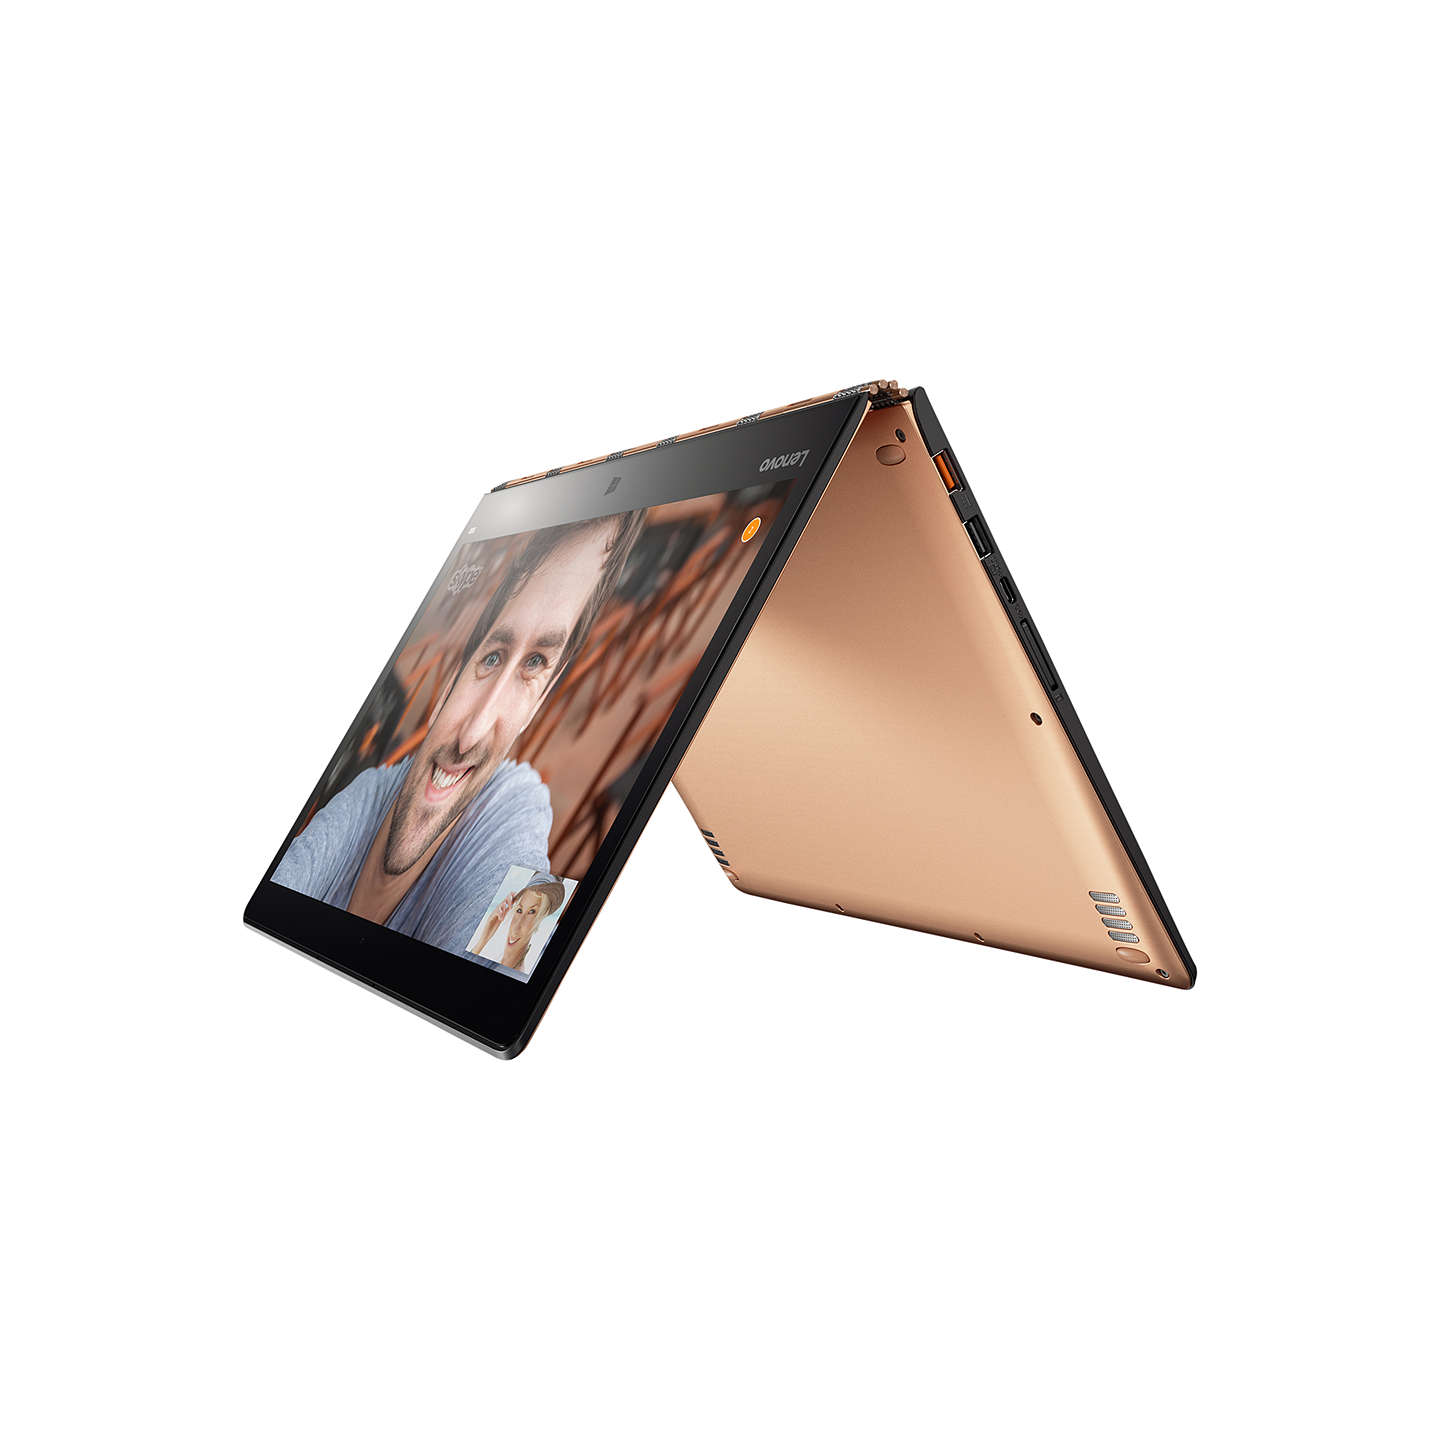 "BuyLenovo YOGA 900 Convertible Laptop, Intel Core i7, 8GB RAM, 256GB SSD, 13"" QHD+ Touch Screen, Champagne Online at johnlewis.com"